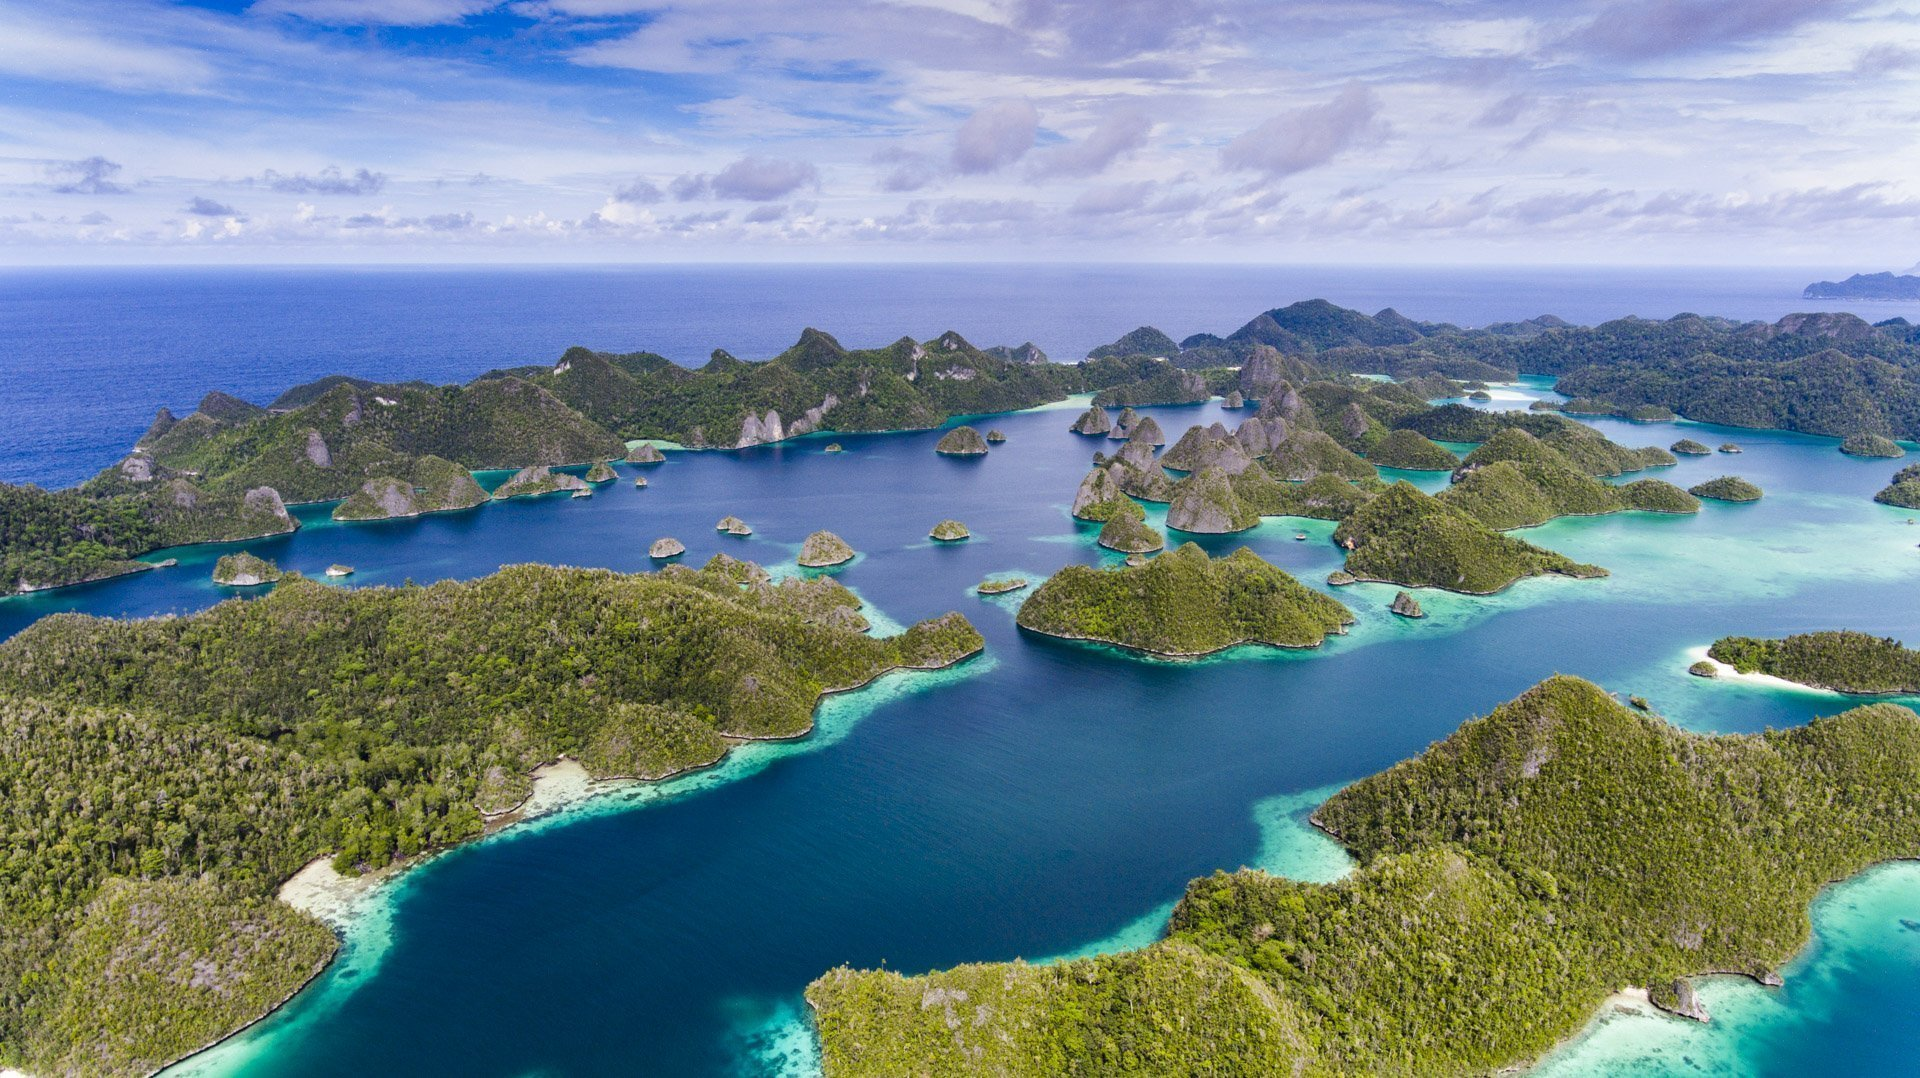 Aerial view of Raja Ampat Islands